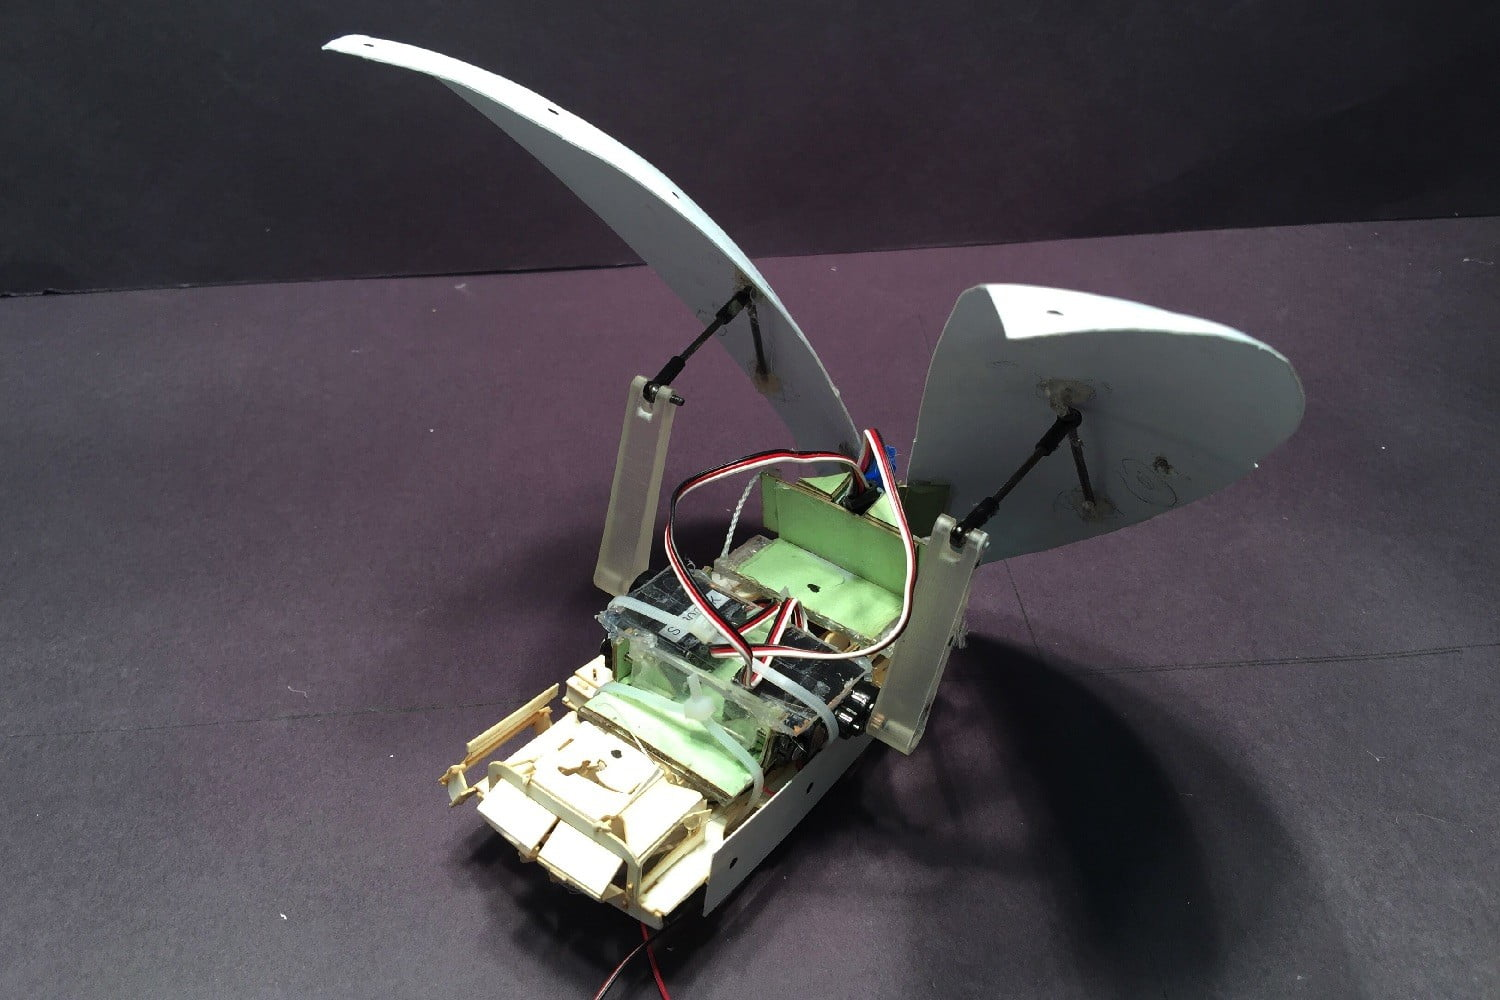 cockroach robot flaps its wings cockroach1